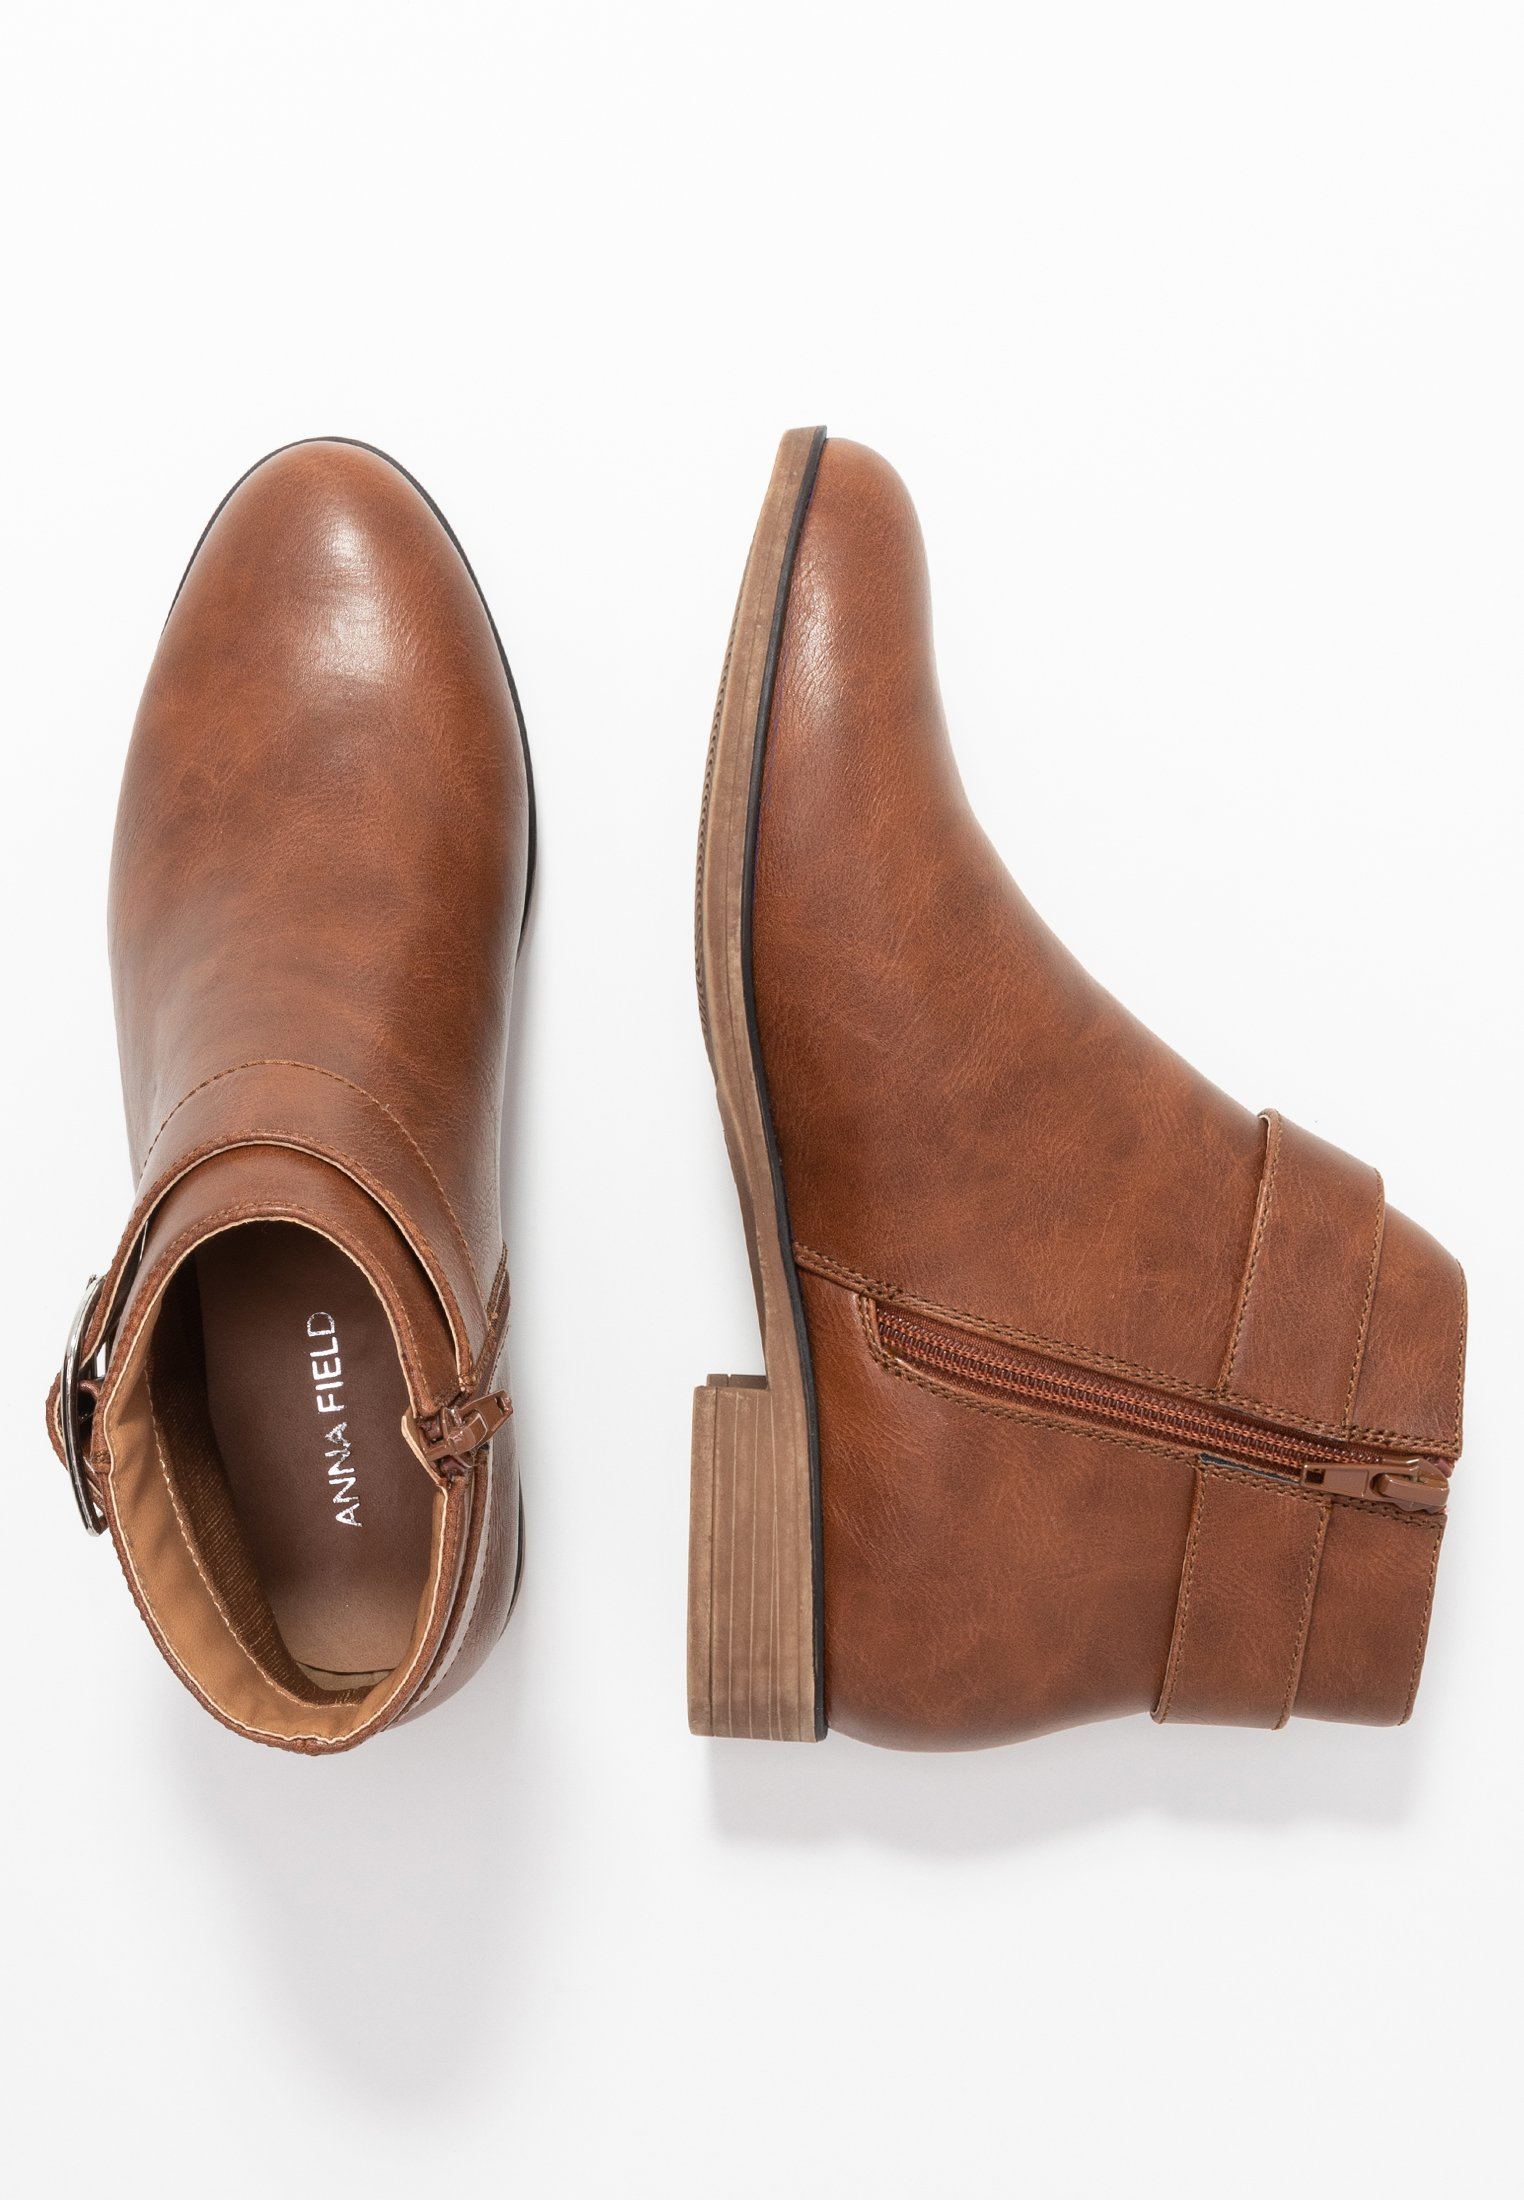 Anna Field Ankle boot - cognac